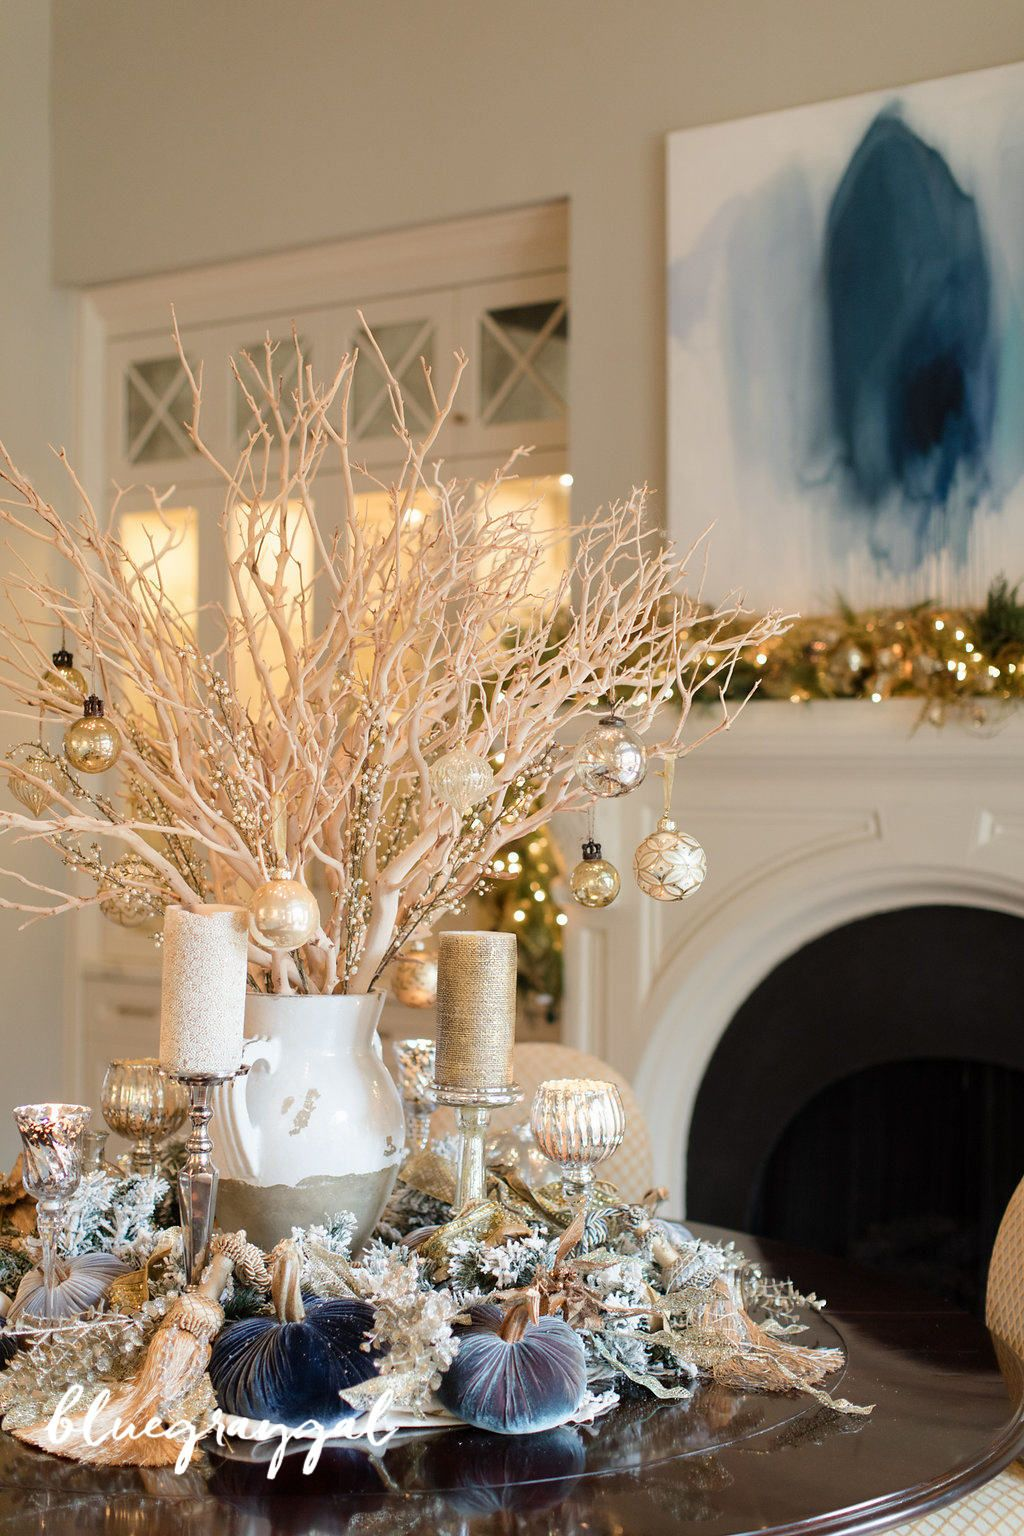 Holiday Centerpiece Decor Products Bluegraygal Christmas Dining Table Decor Holiday Centerpieces Christmas Centerpieces